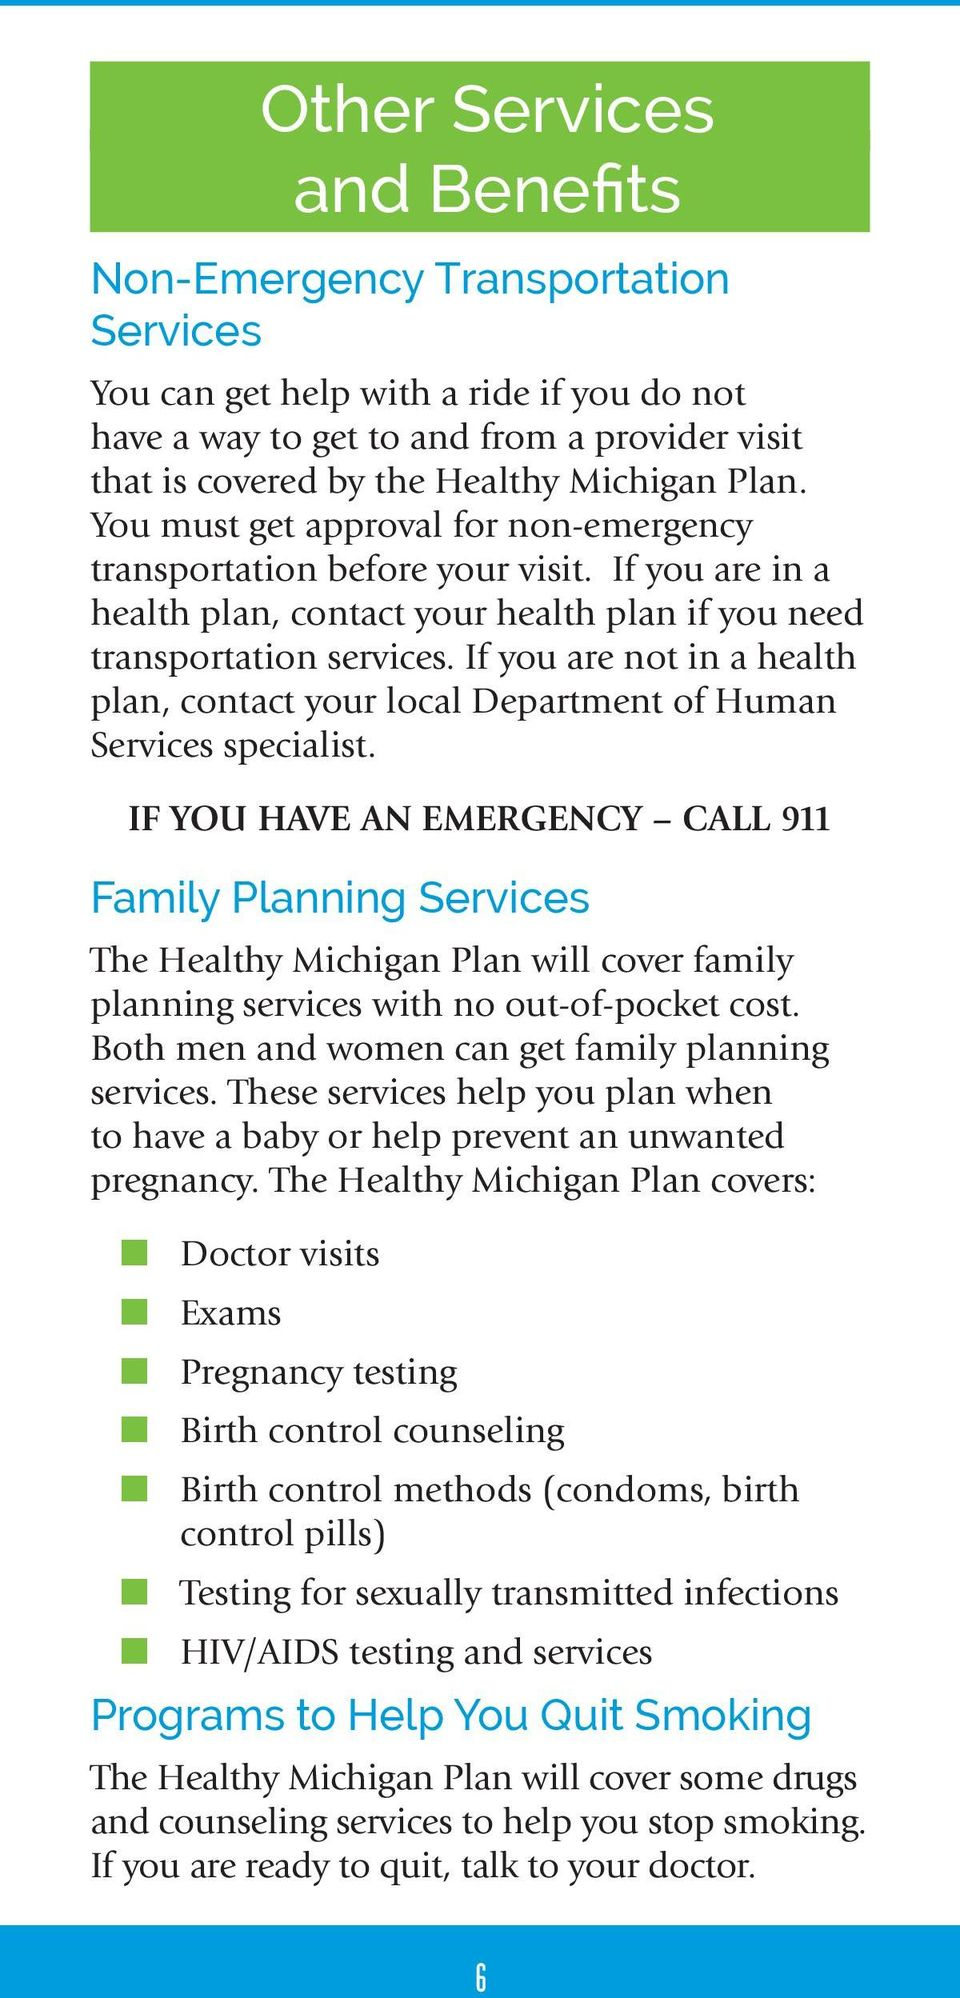 If you are not in a health plan, contact your local Department of Human Services specialist.